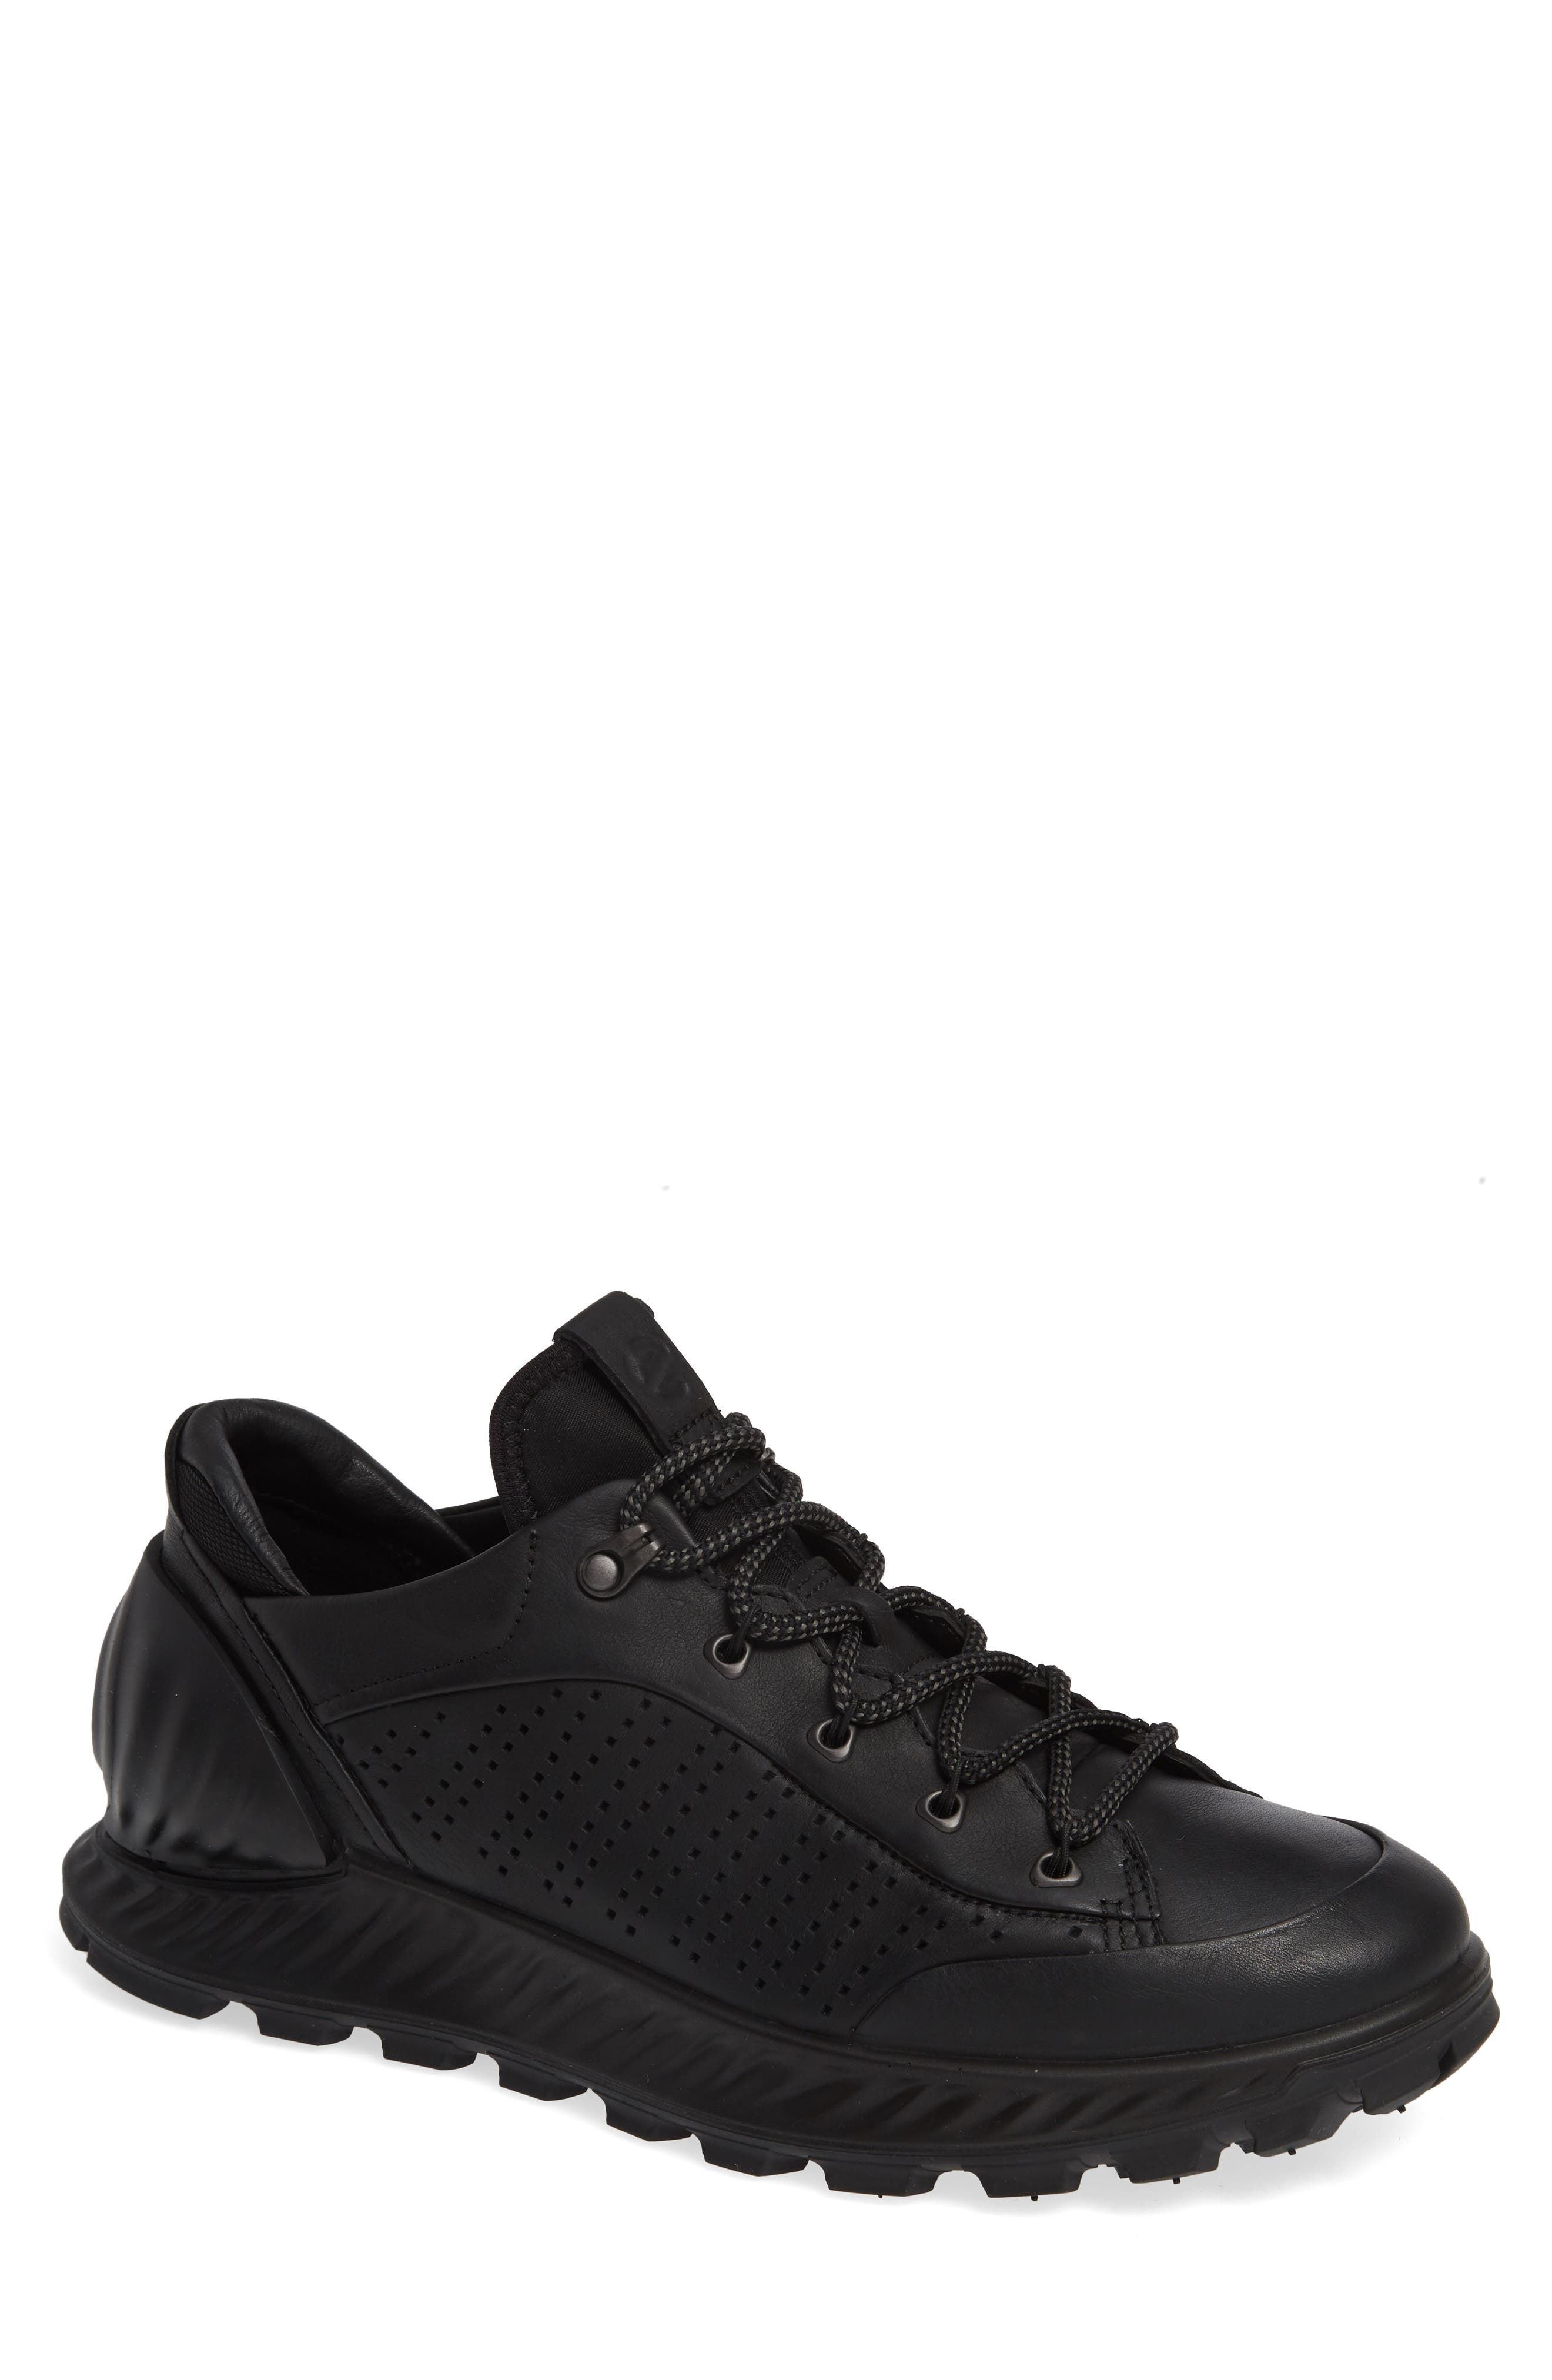 Exostrike High Top Sneaker, Main, color, BLACK LEATHER